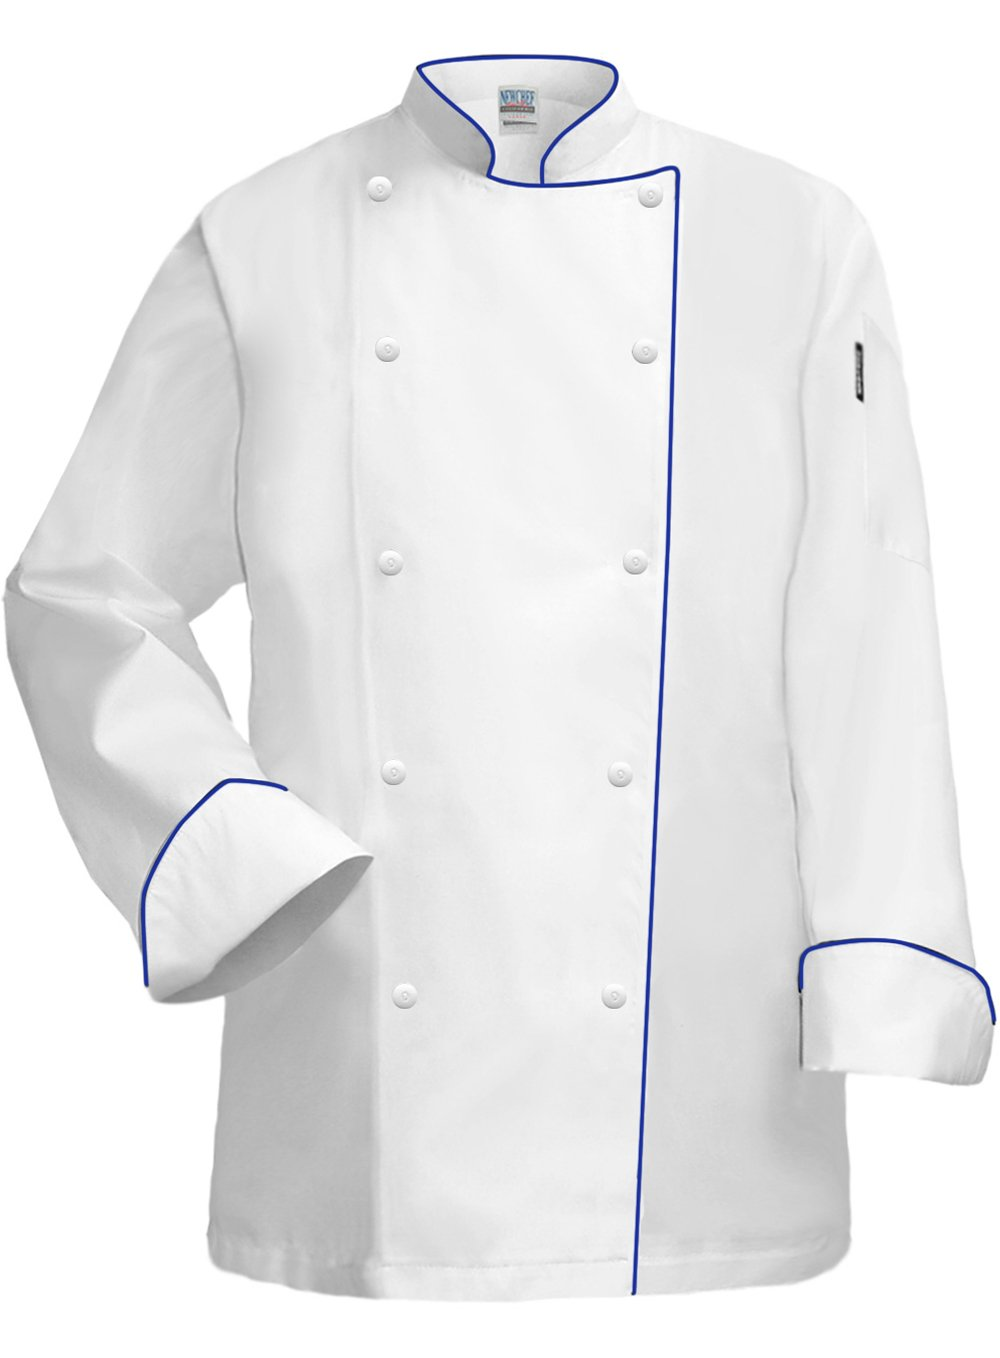 Newchef Fashion White Lady Chef Coat with Royal Blue Trim 3XL White by Newchef Fashion